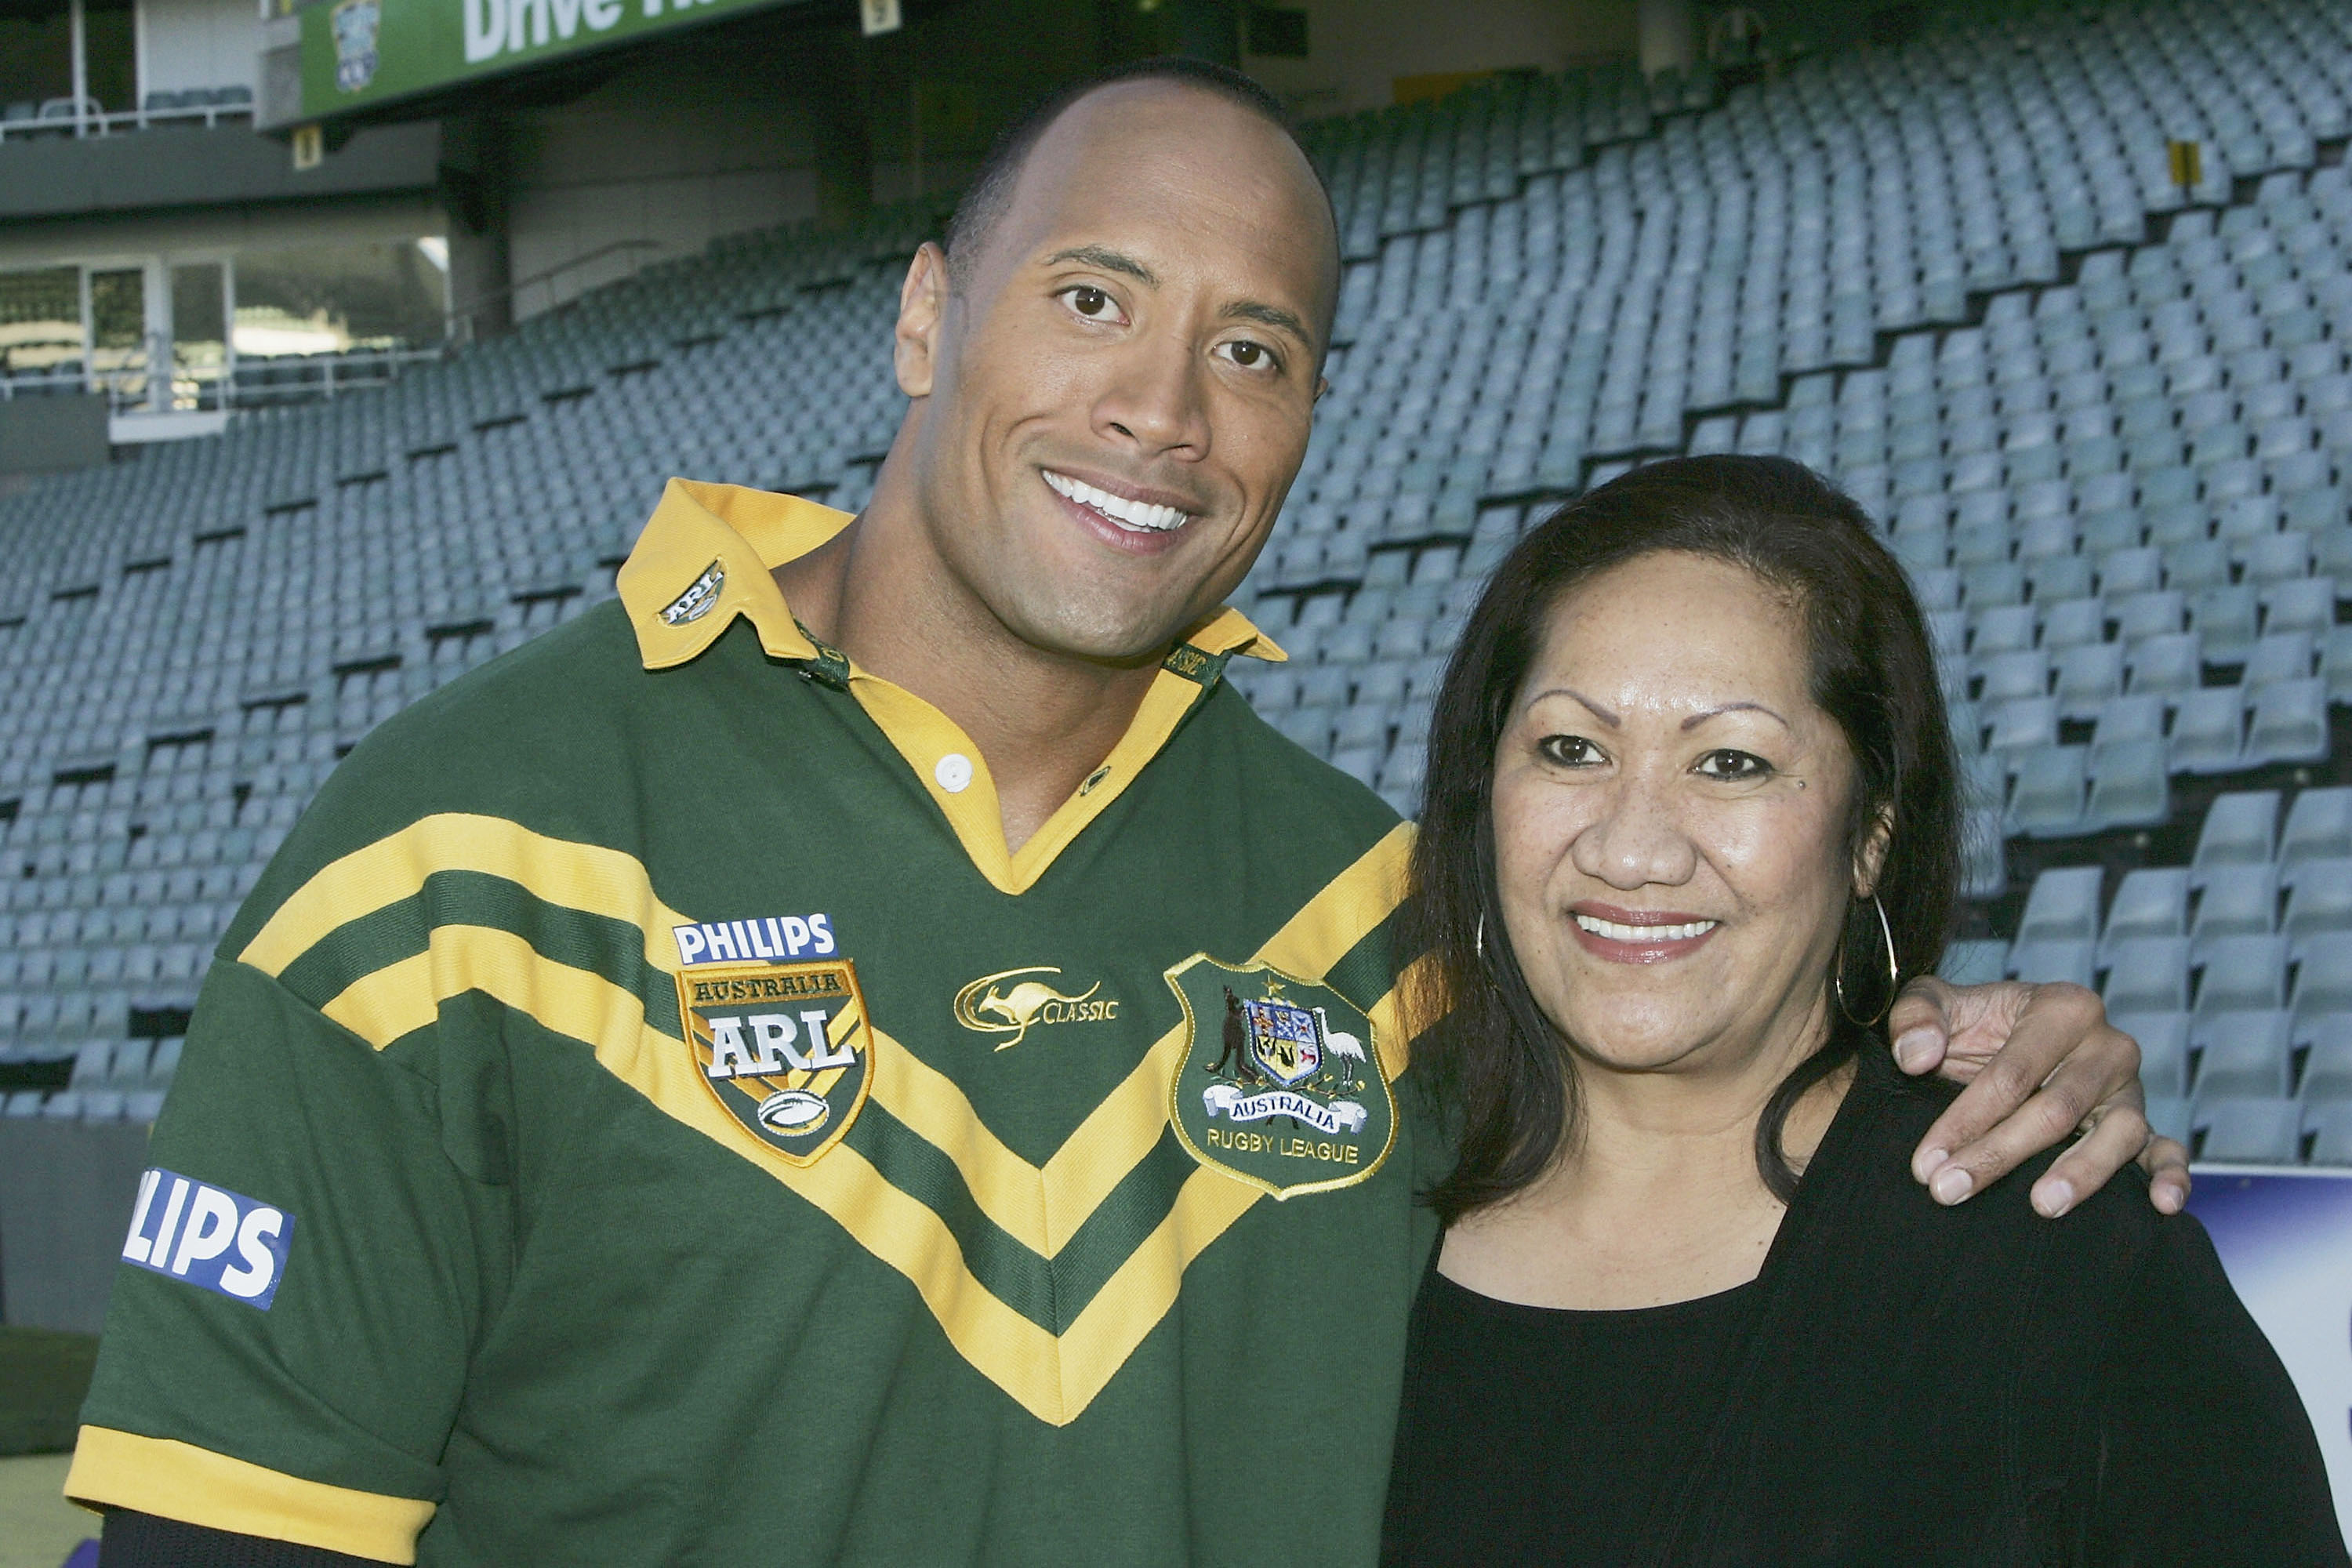 "SYDNEY, AUSTRALIA - AUGUST 5: Actor Dwayne ""The Rock"" Johnson poses with his mother Ata after receiving the Australian Rugby League official ""Kangaroo"" Jersey from a selection of national players at the Aussie Stadium on August 5, 2004 in Sydney, Australia. (Photo by Patrick Riviere/Getty Images)"